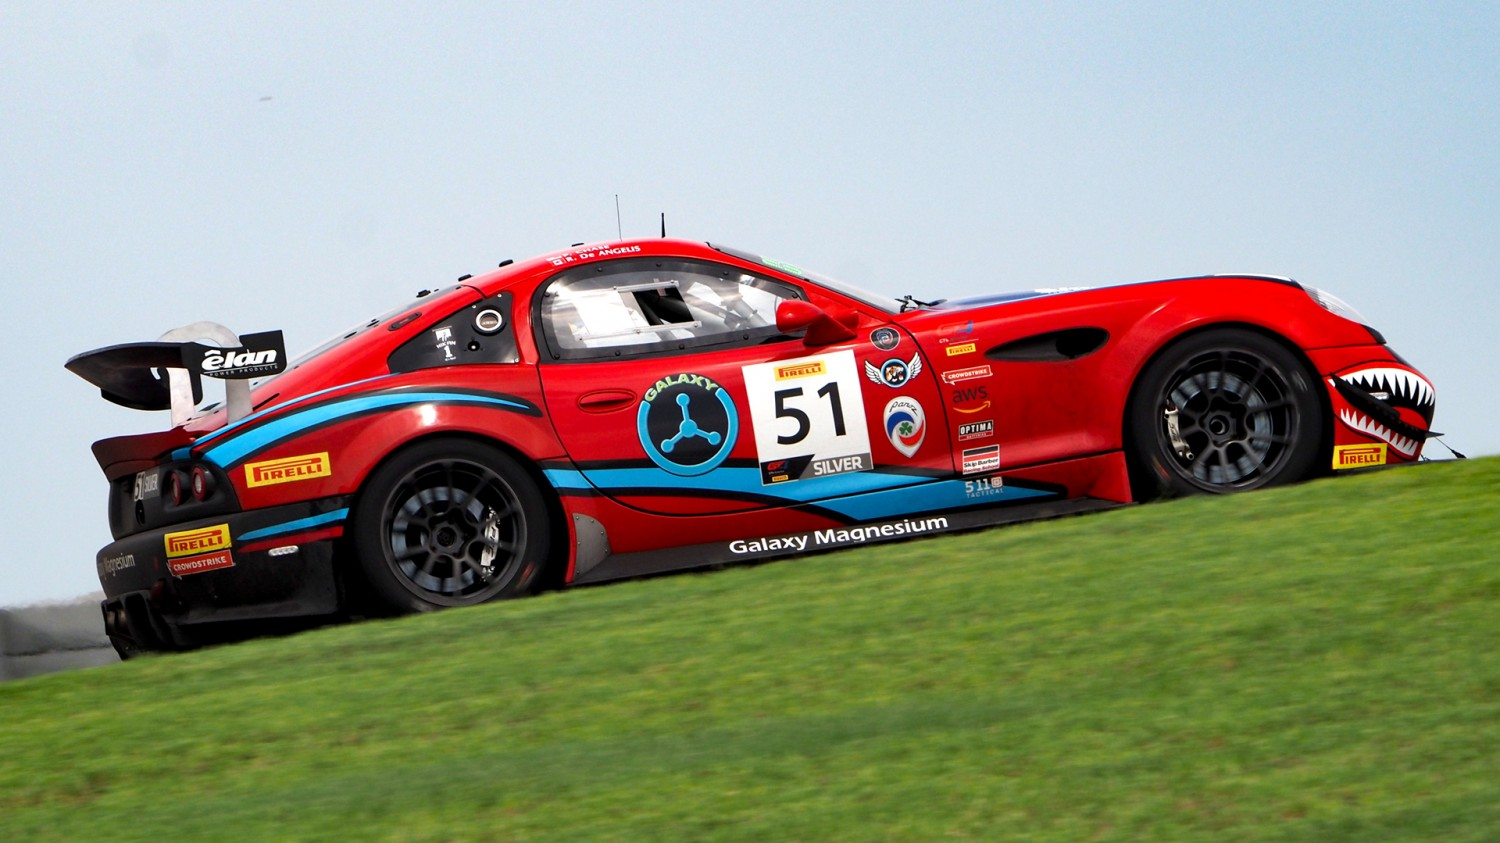 Panoz Racing Take Exciting Victory At COTA for Pirelli GT4 America SprintX Race 1